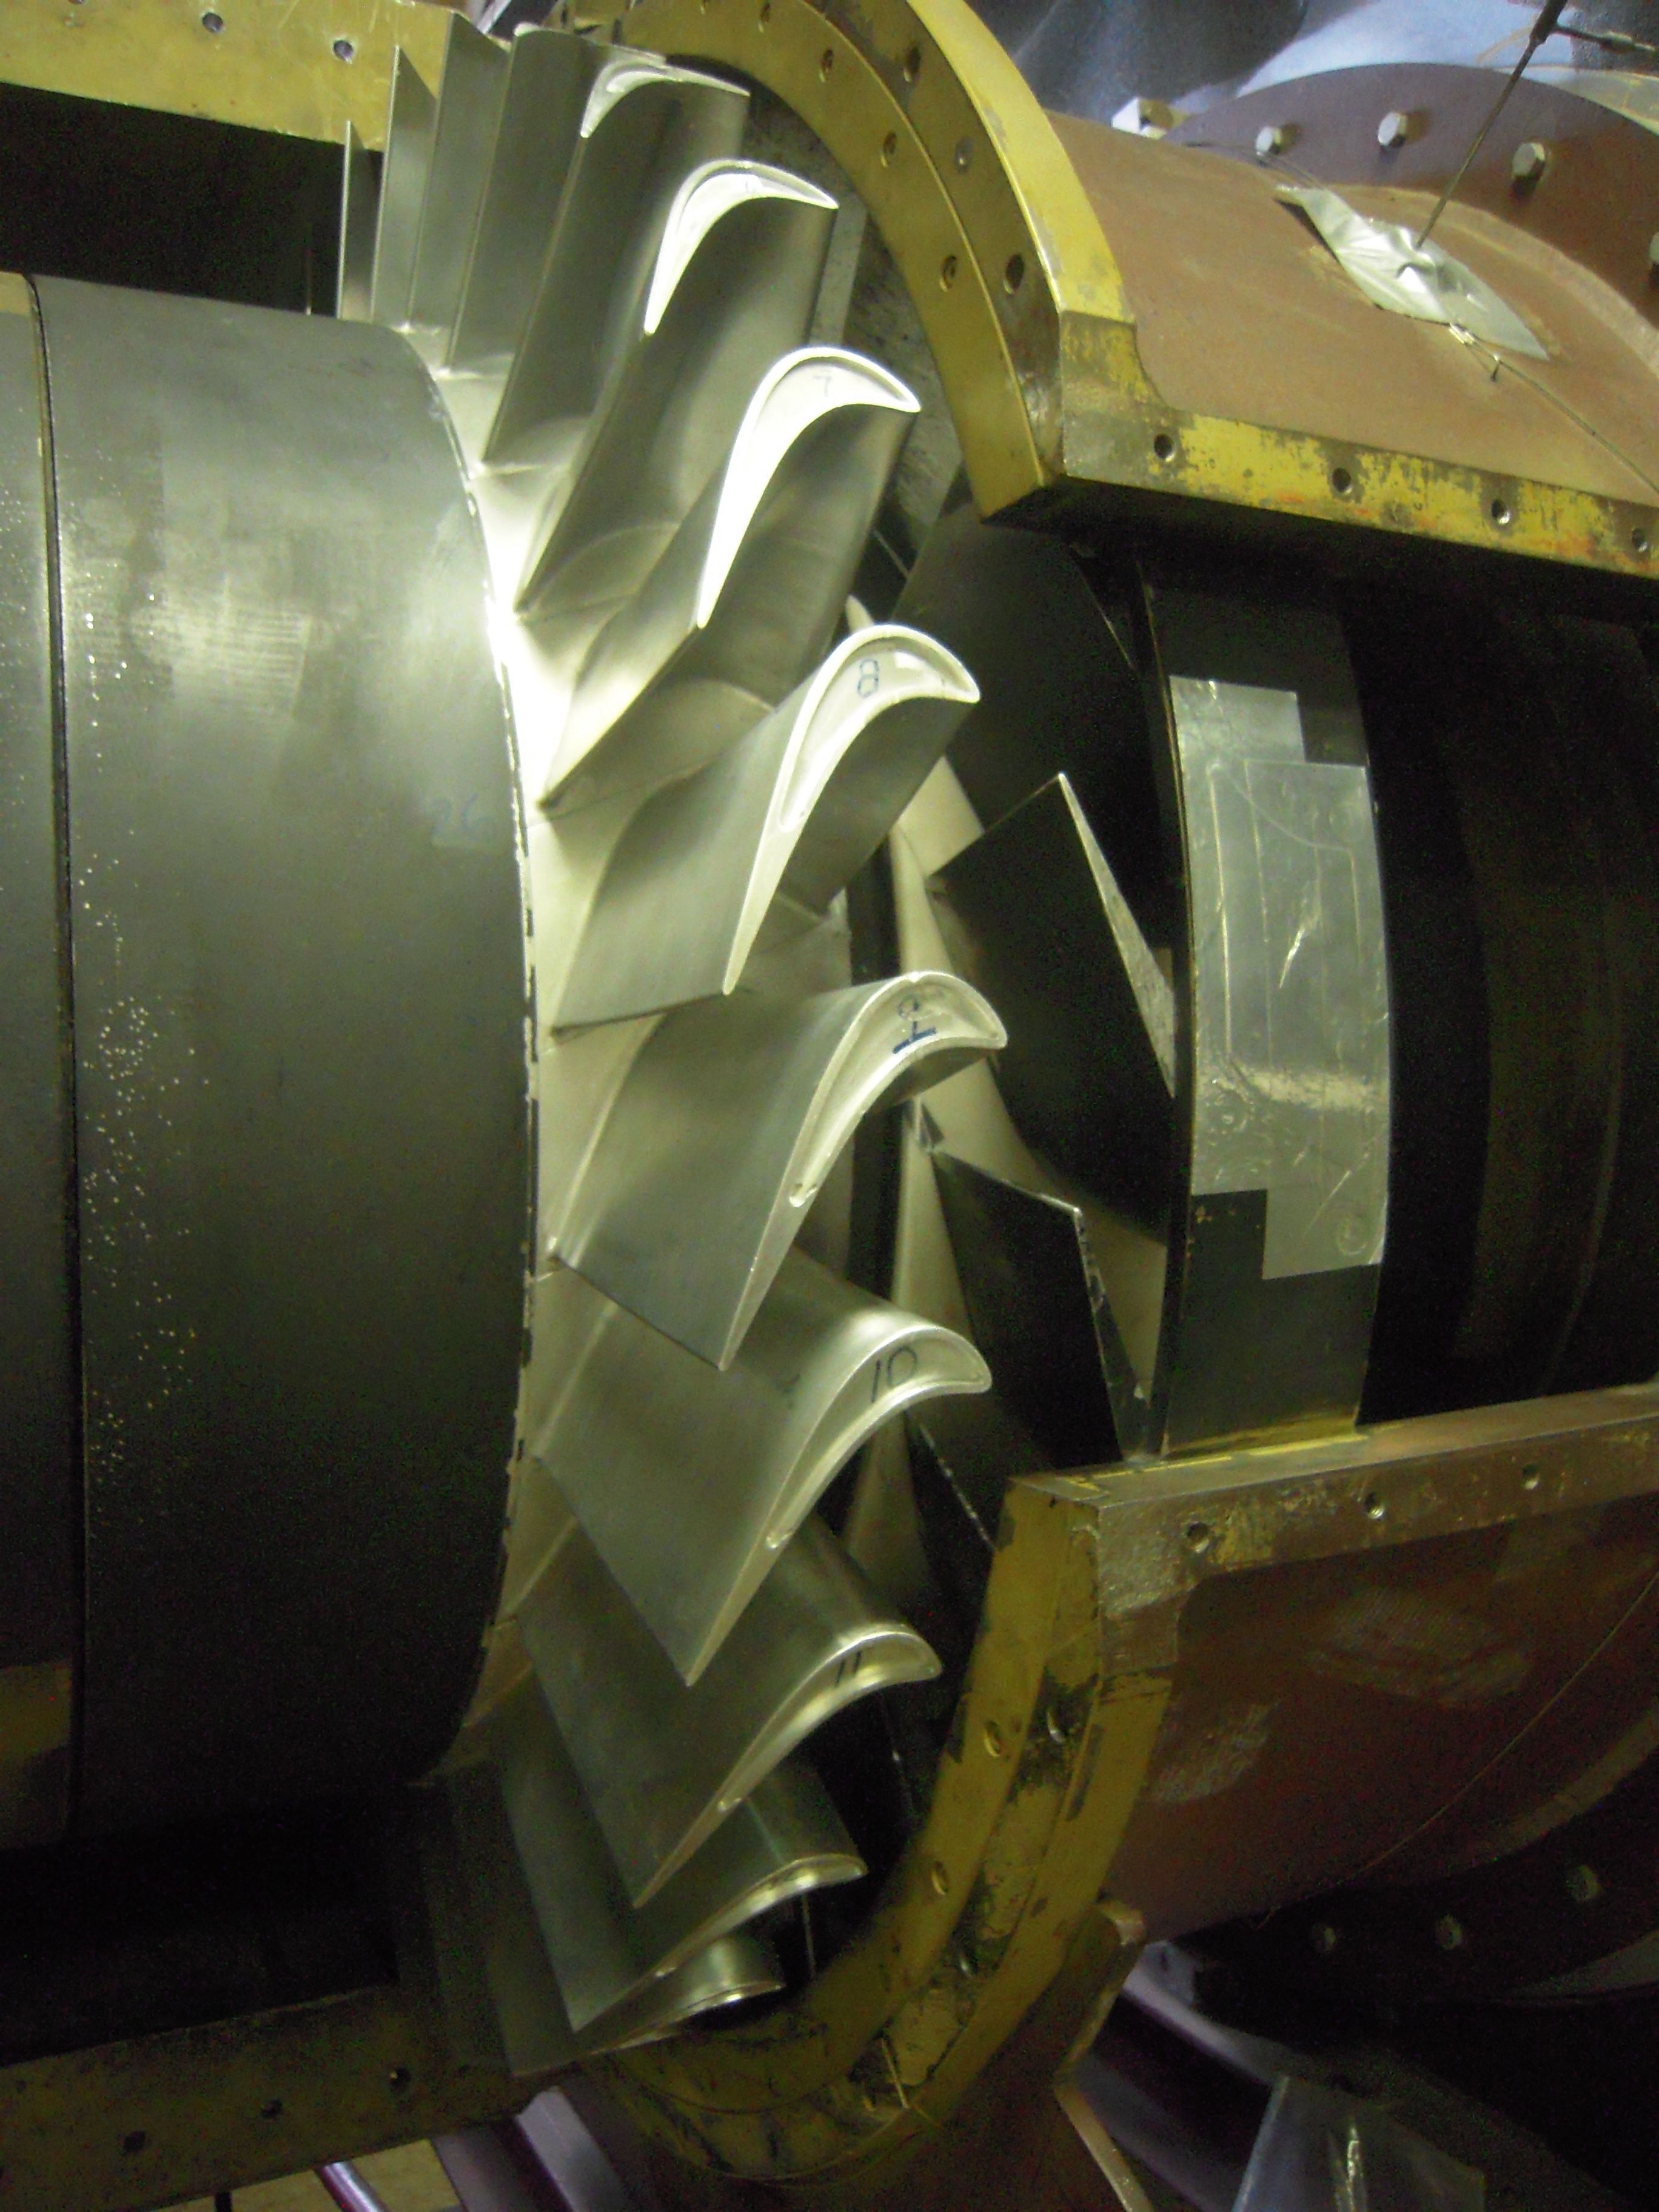 The rotor blade assembly in the large scale Axial Flow Turbine